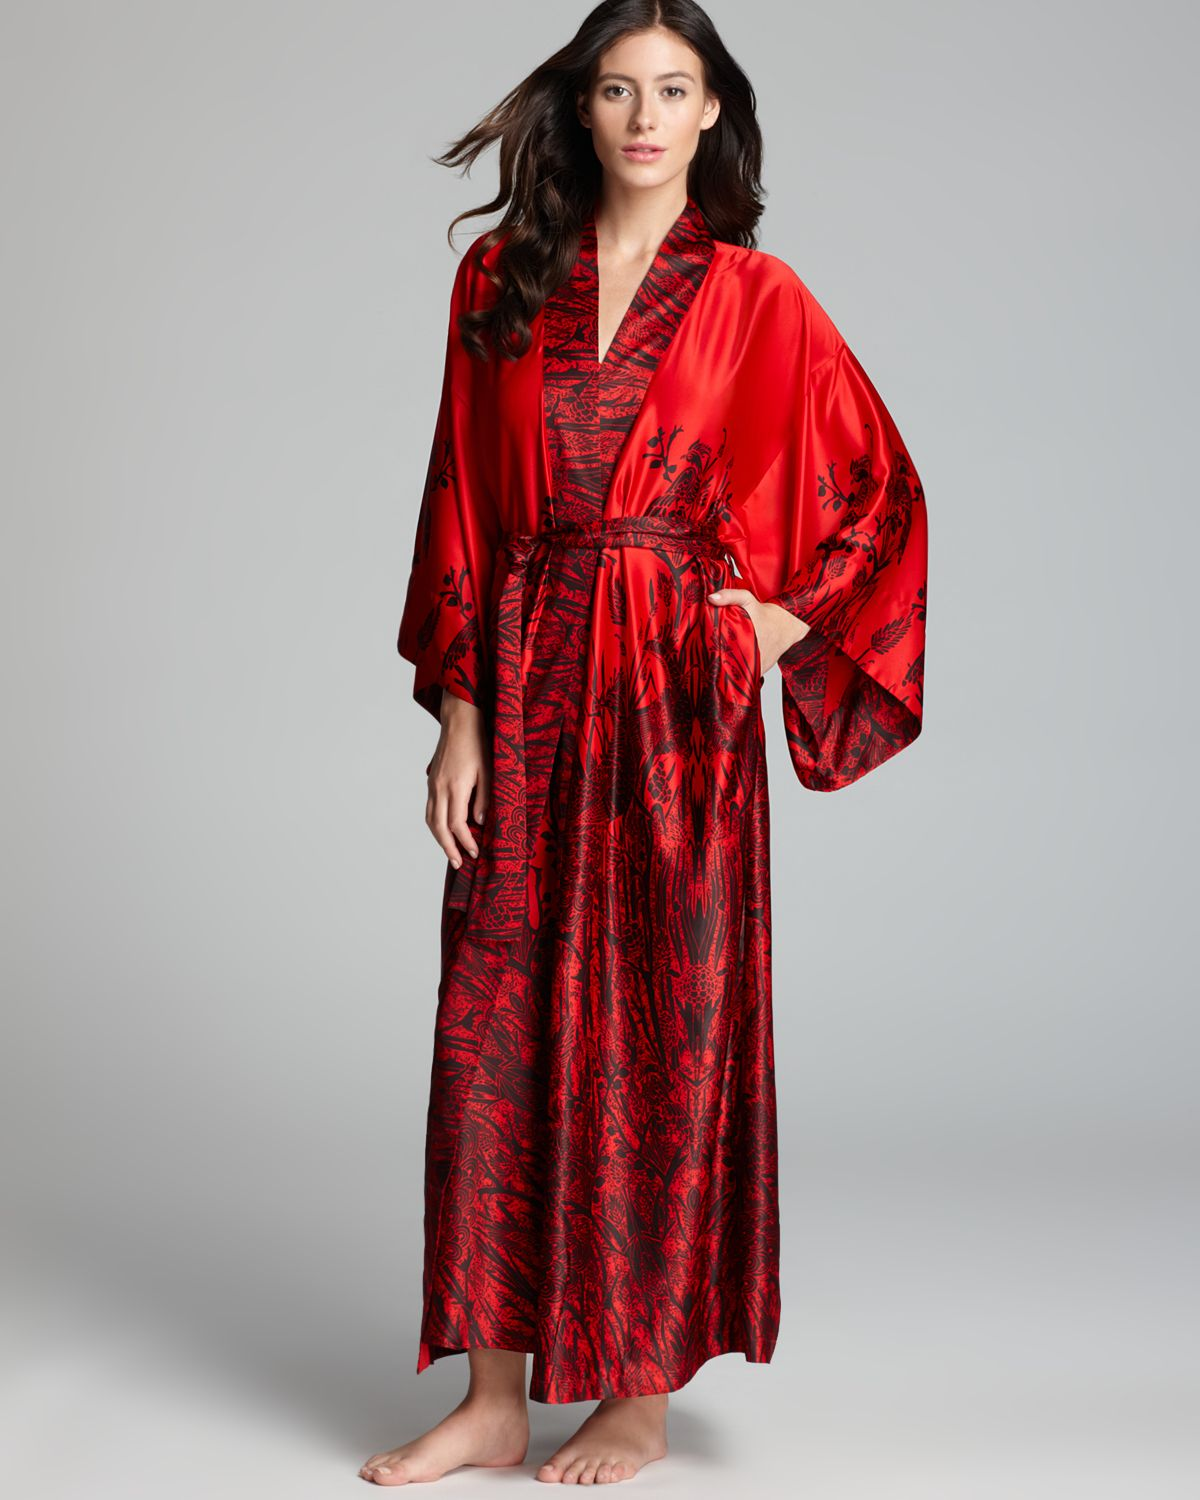 Lyst - Natori Phoenix Robe in Red